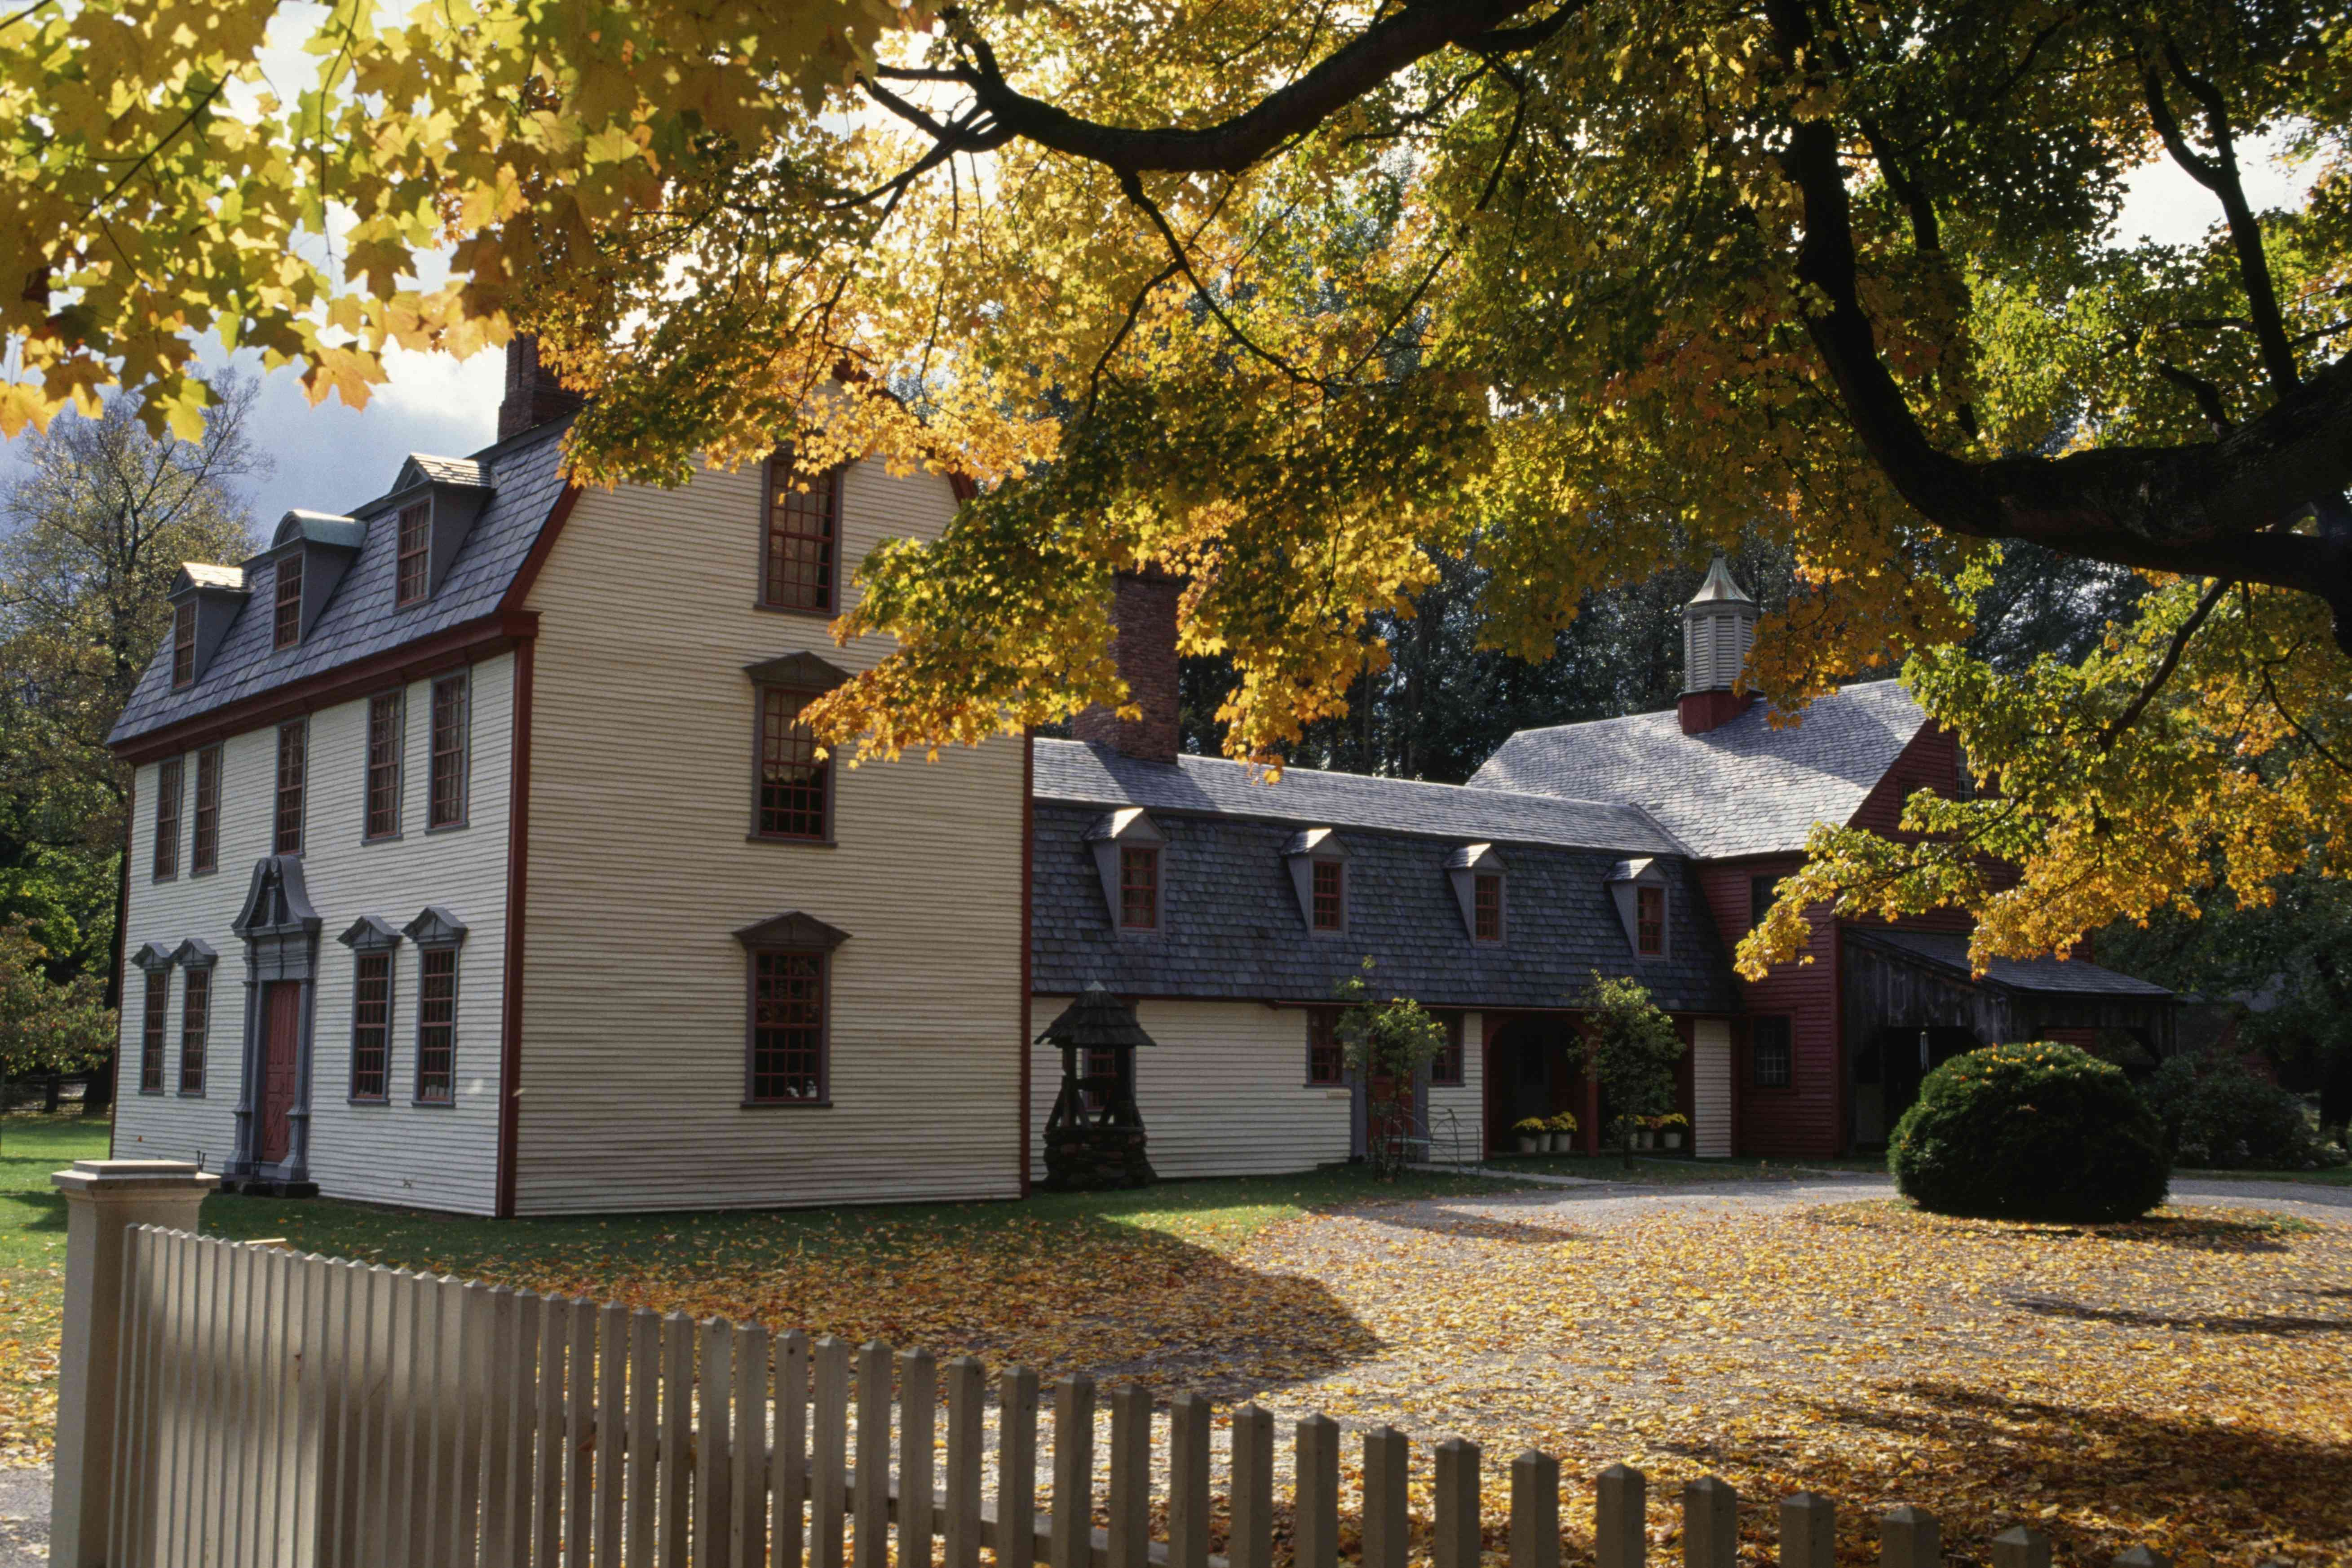 18th-century house with trees in the foreground and leaves on the ground